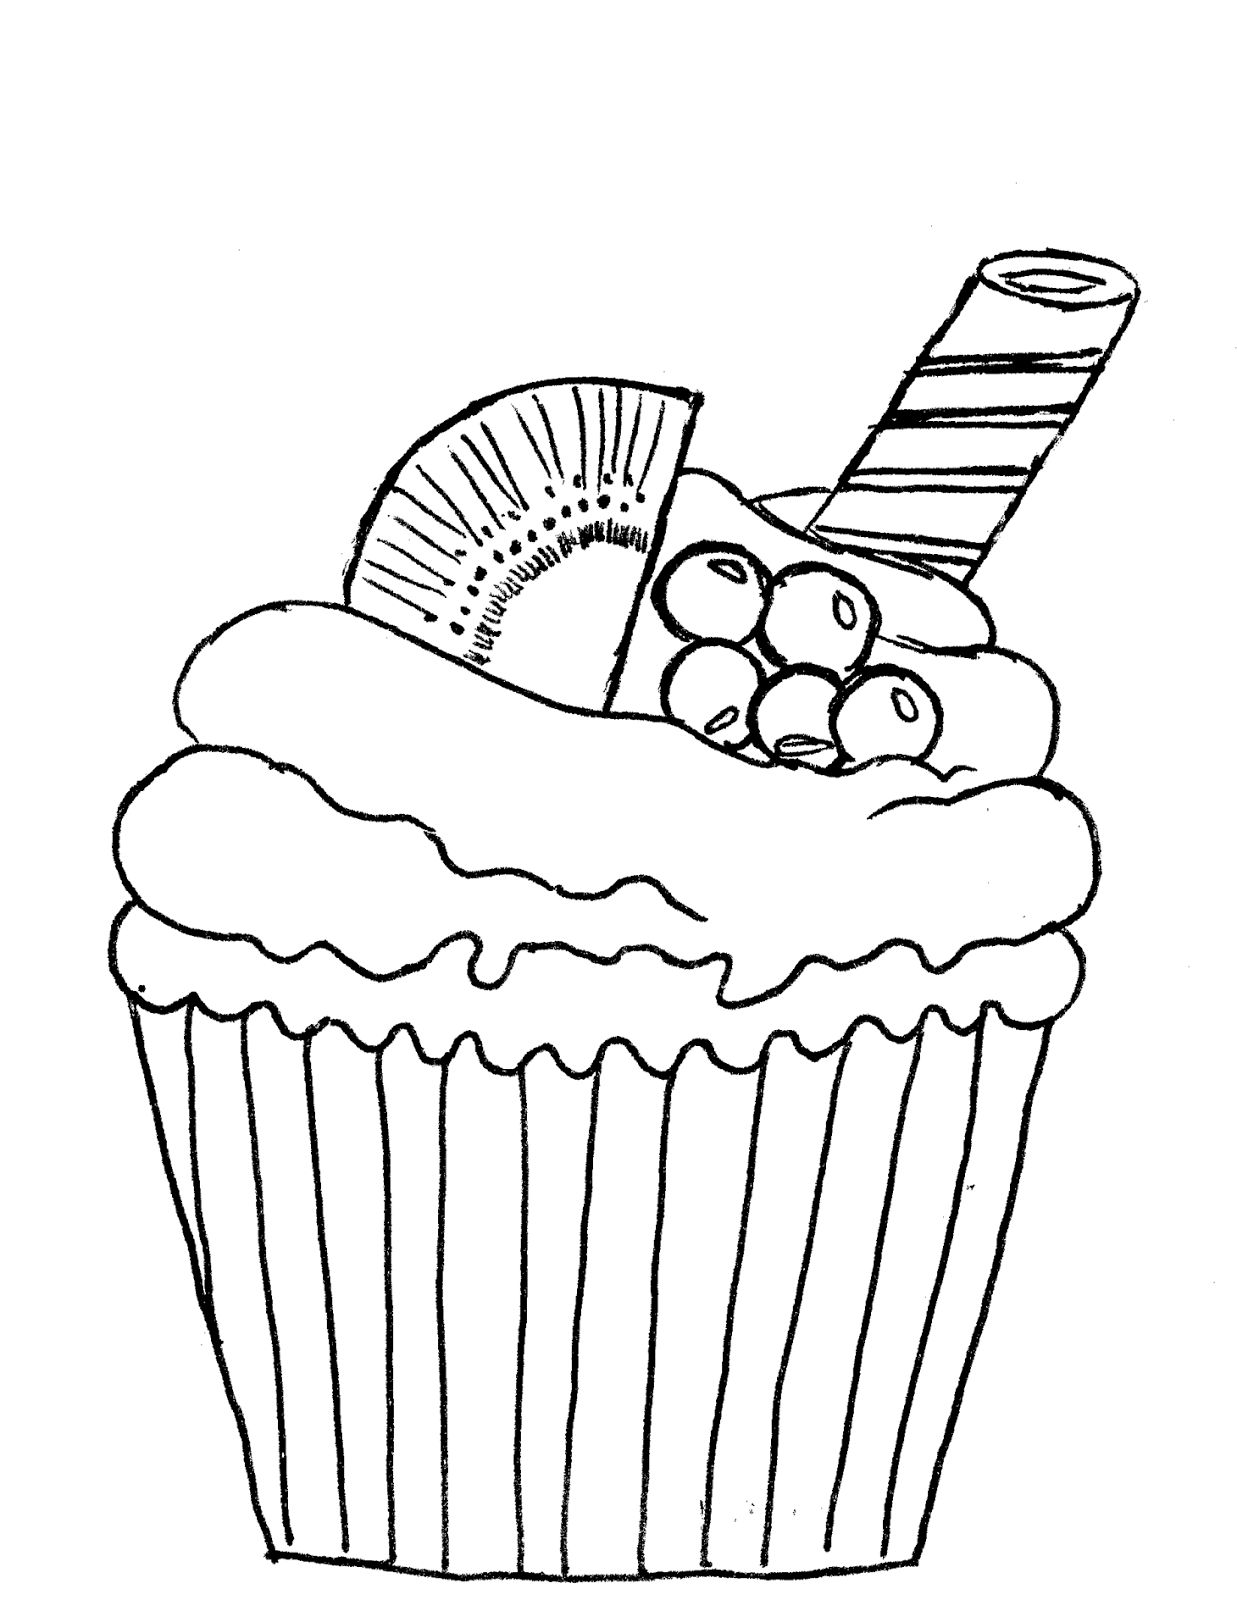 muffin coloring sheet muffins baked fresh for coloring crayon palace coloring muffin sheet